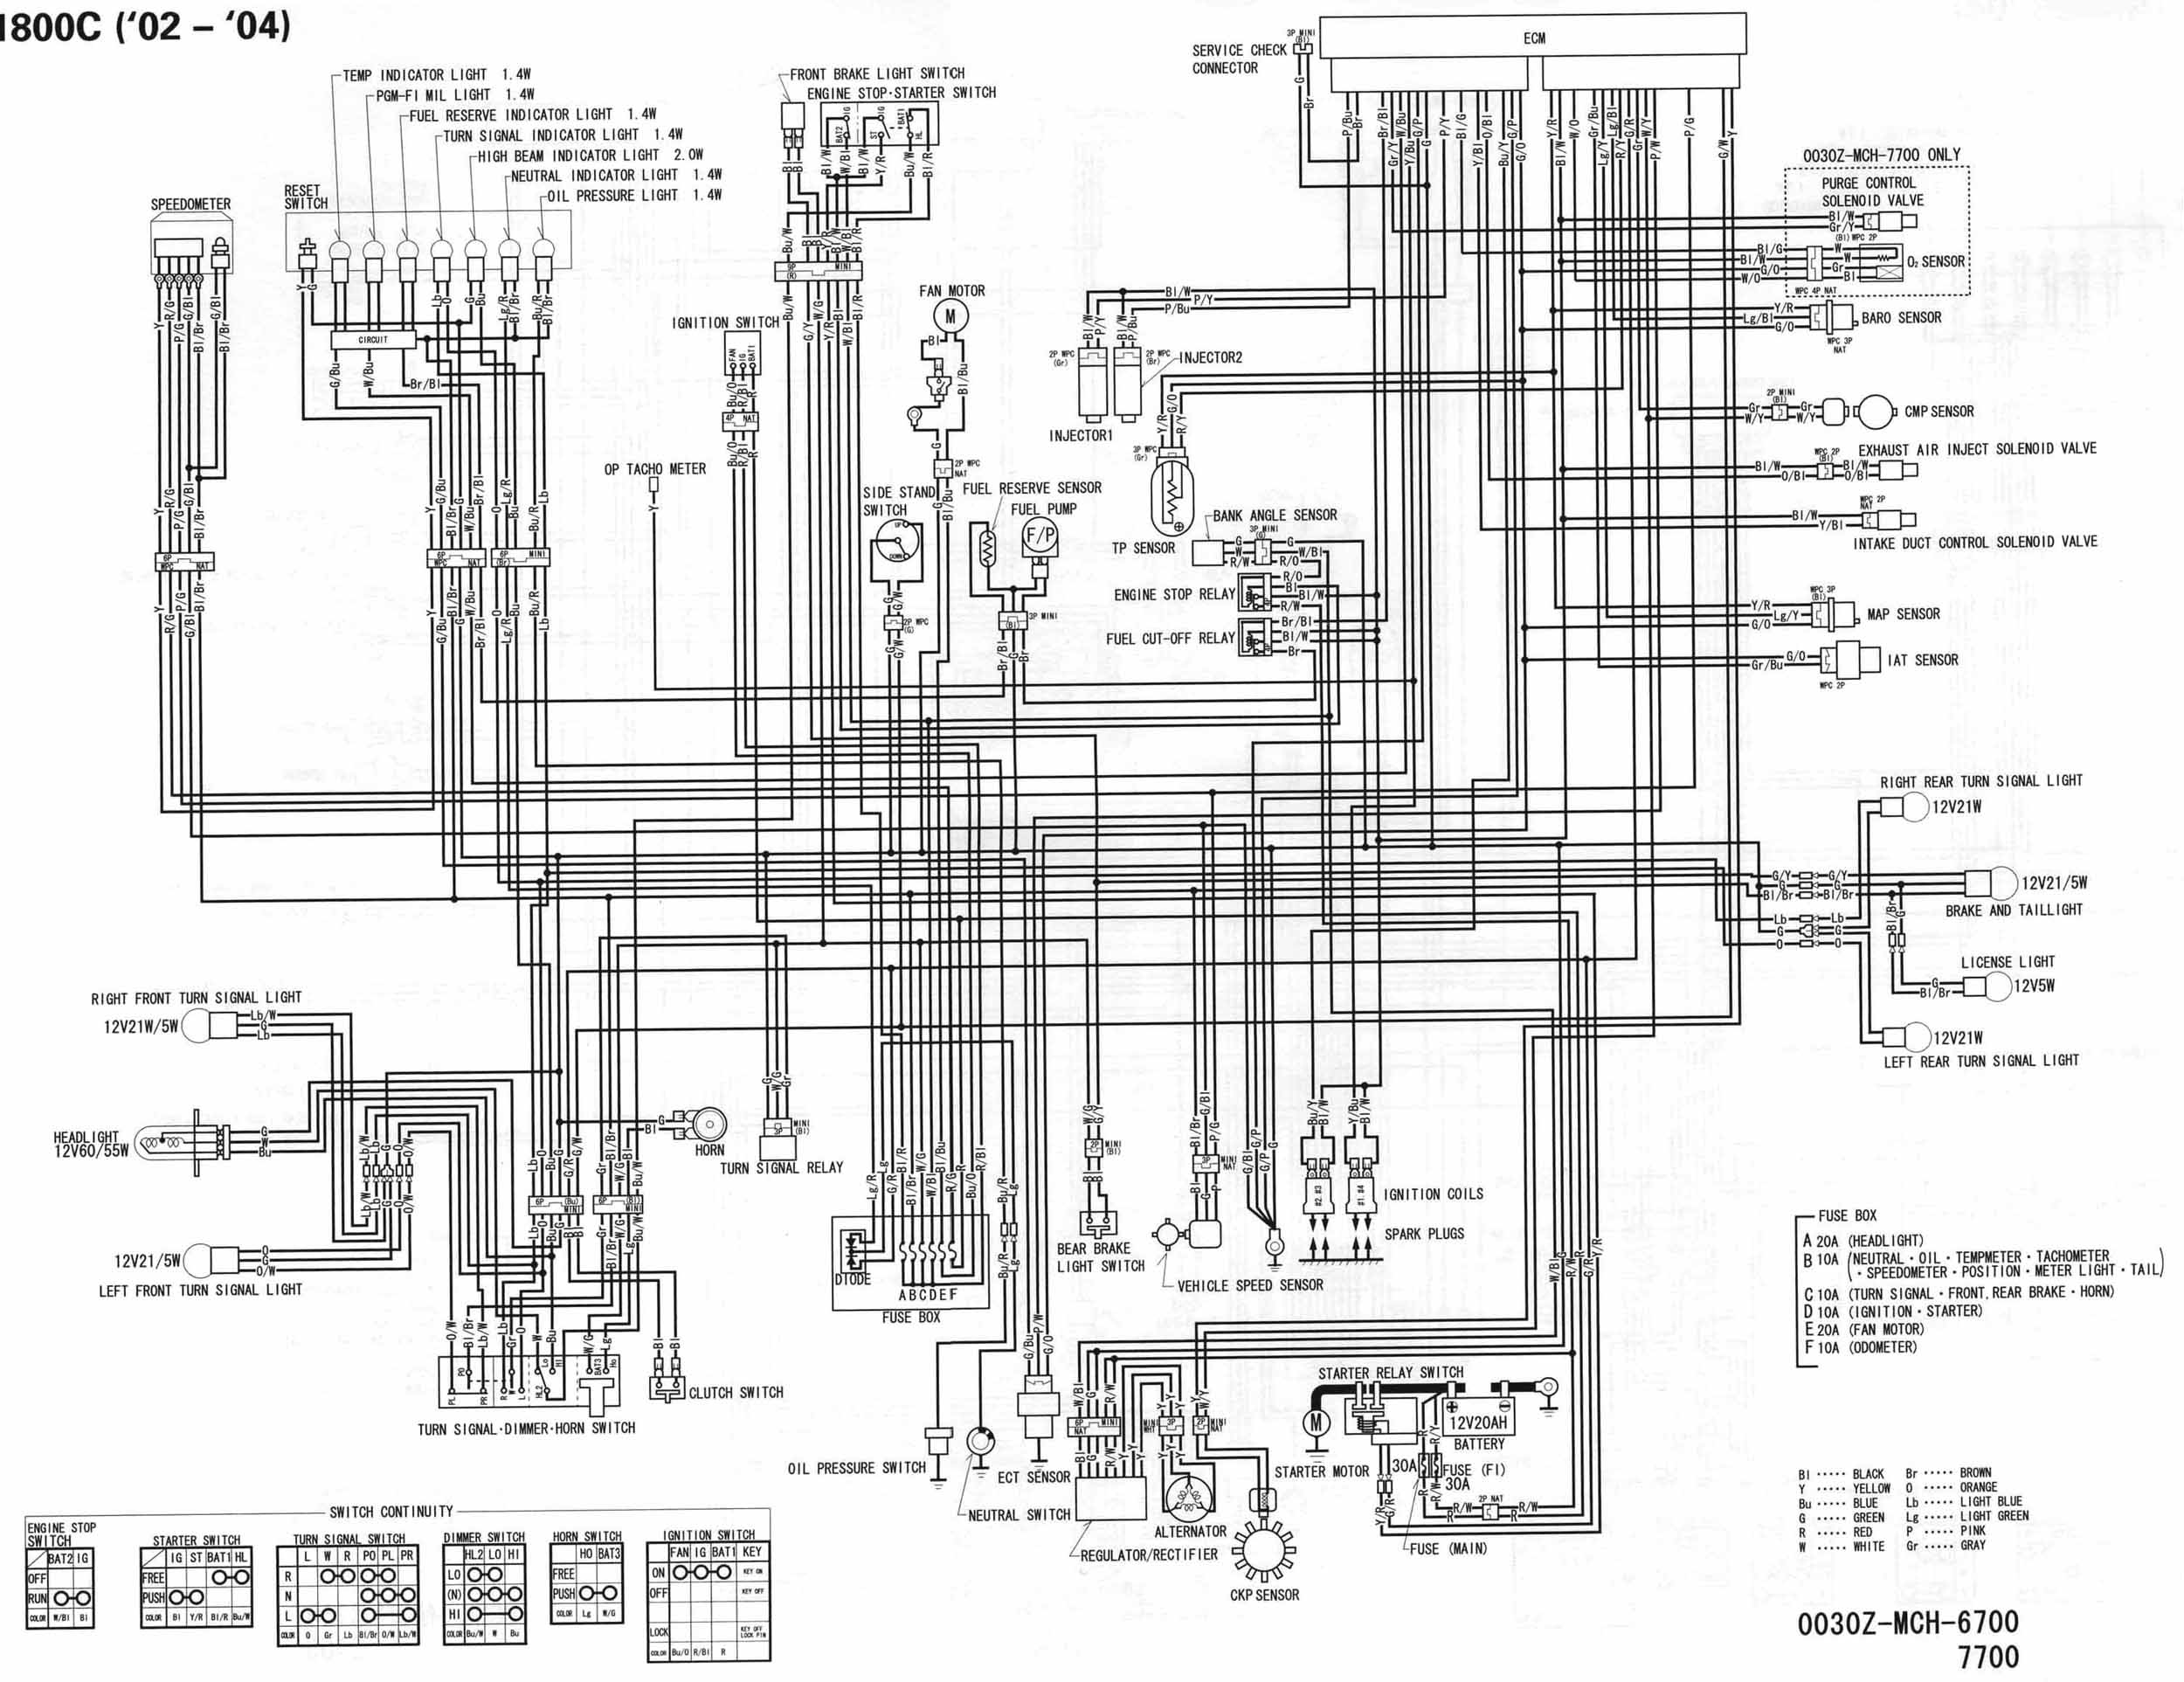 [QMVU_8575]  A950307 Kubota Zd21 Electrical Wiring Diagram | Wiring Resources | Kubota Mx5100 Wiring Diagram |  | Wiring Resources